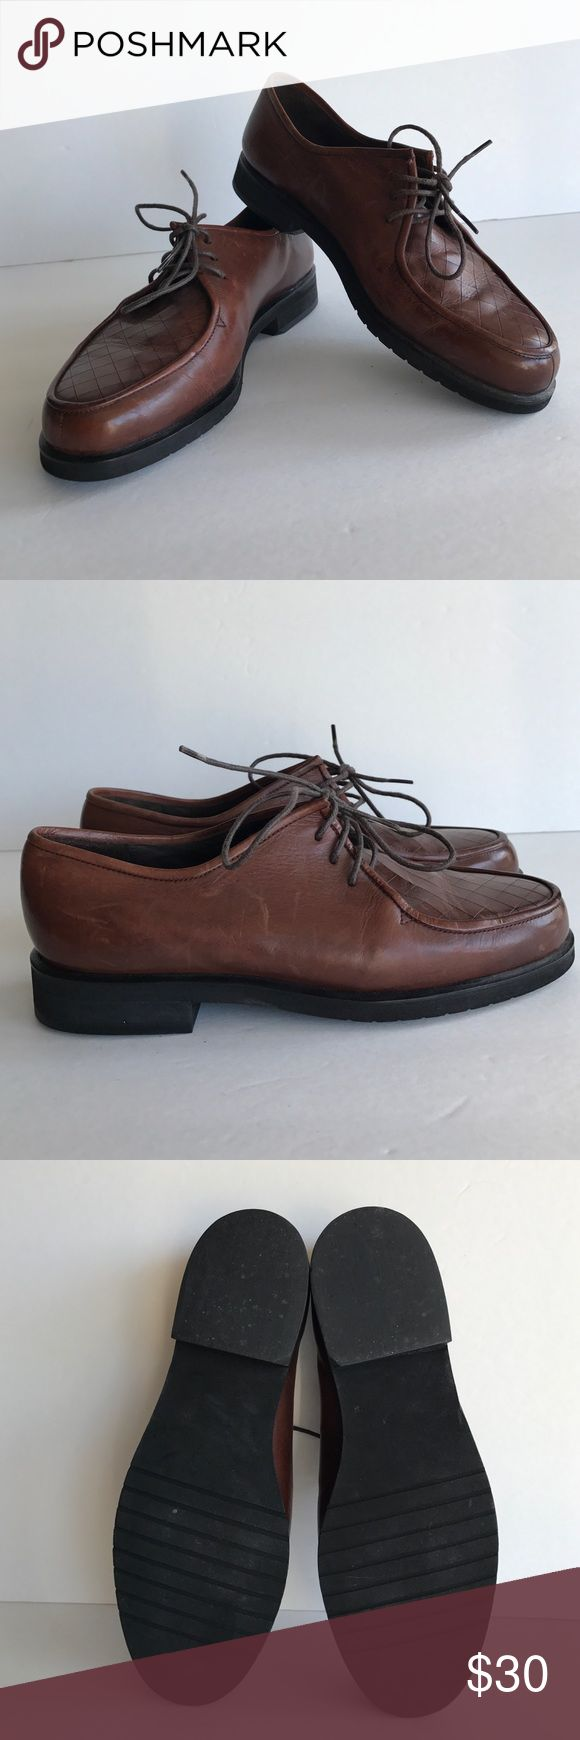 🎉HP 2/2🎉Cole Haan Dress Shoes Cole Haan Dress Shoes, size, 6 1/2, some small scratches as shown in last photo, soles in perfect condition, soft durable leather, such a beautiful shoe! Smoke free home Cole Haan Shoes Dress Shoes